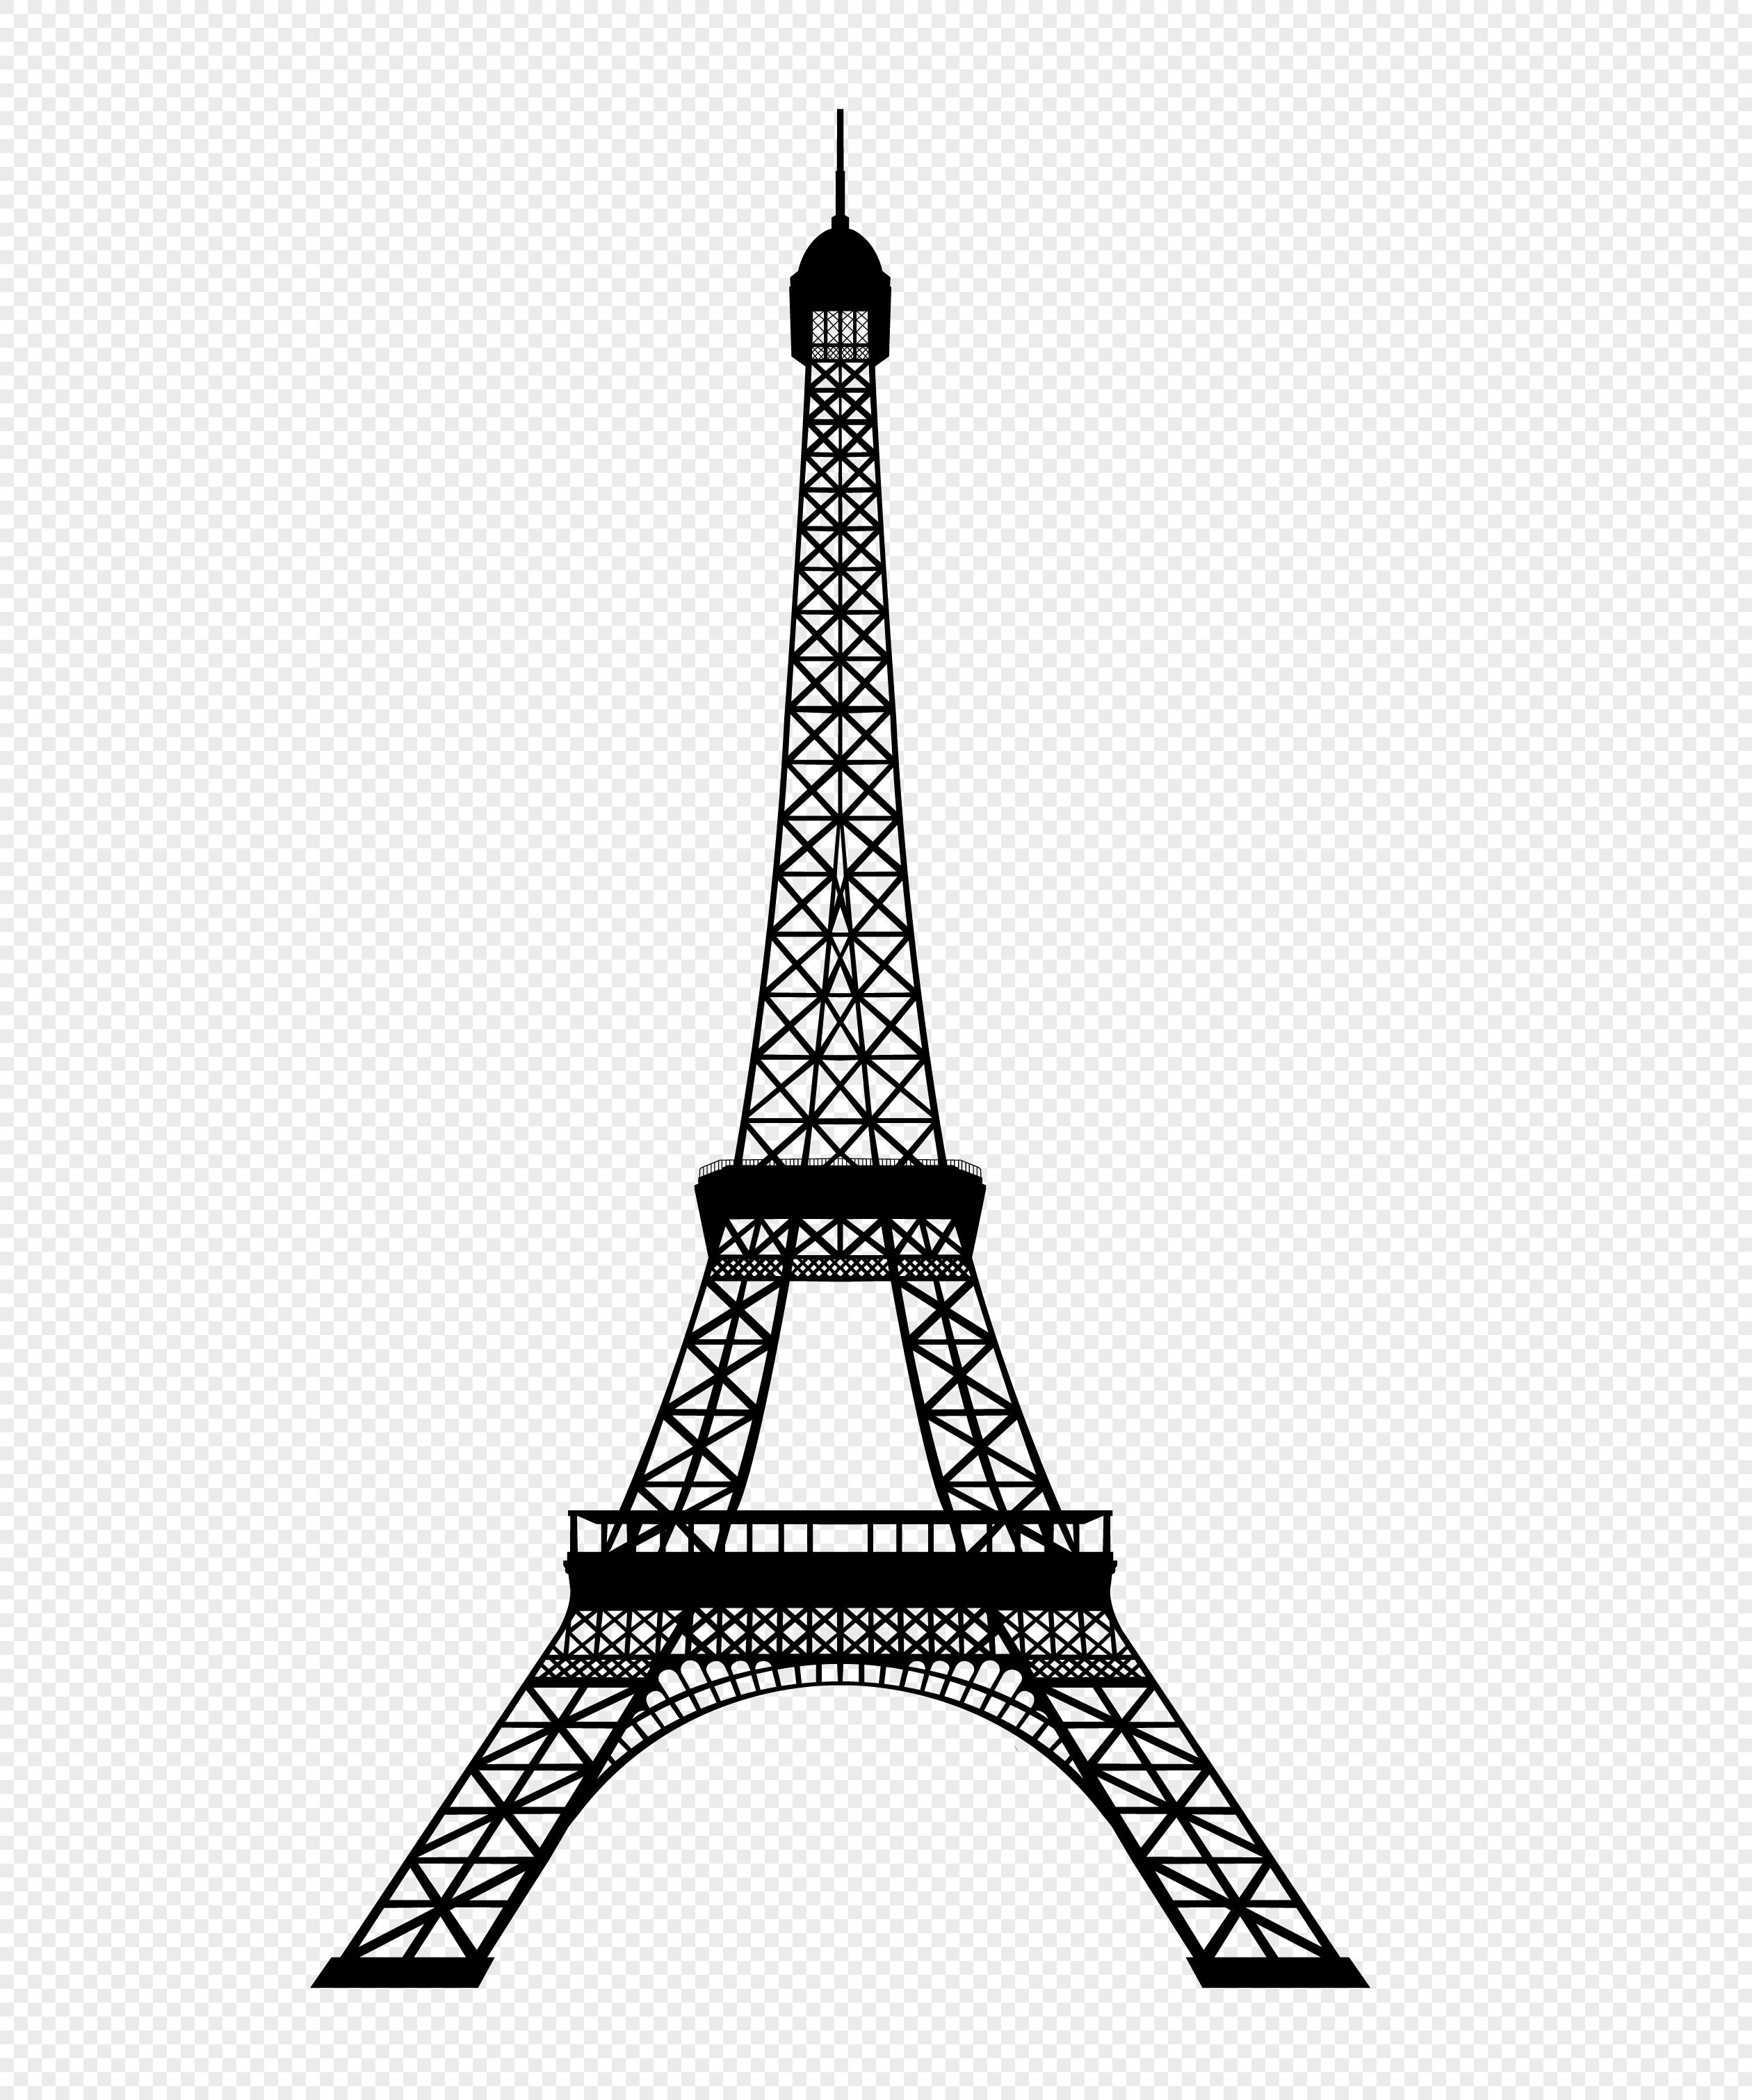 how to draw the eiffel tower cartoon cartoon drawing of the eiffel tower at getdrawings free how tower eiffel cartoon to the draw